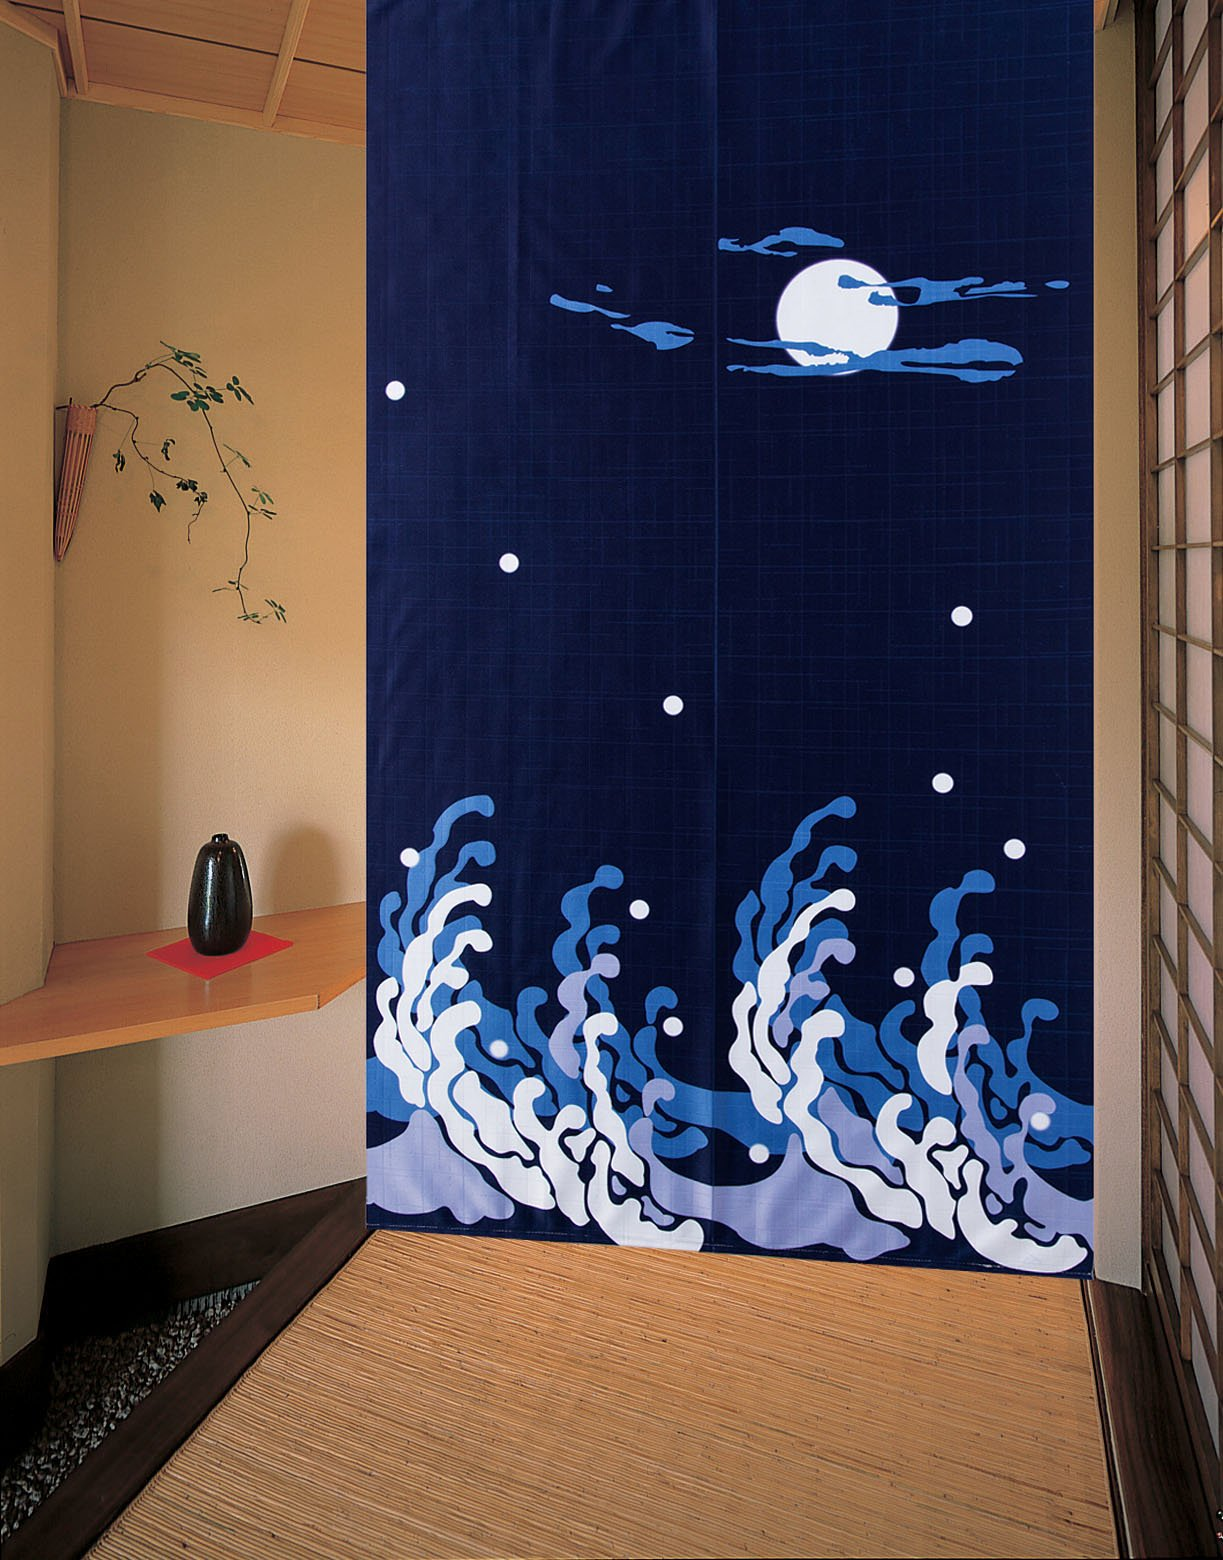 LifEast Dark Blue Peaceful Night Pattern Doorway Curtain Big Waves and Bright Moon Shinny Stars Japanese Style Noren Curtain by LifEast